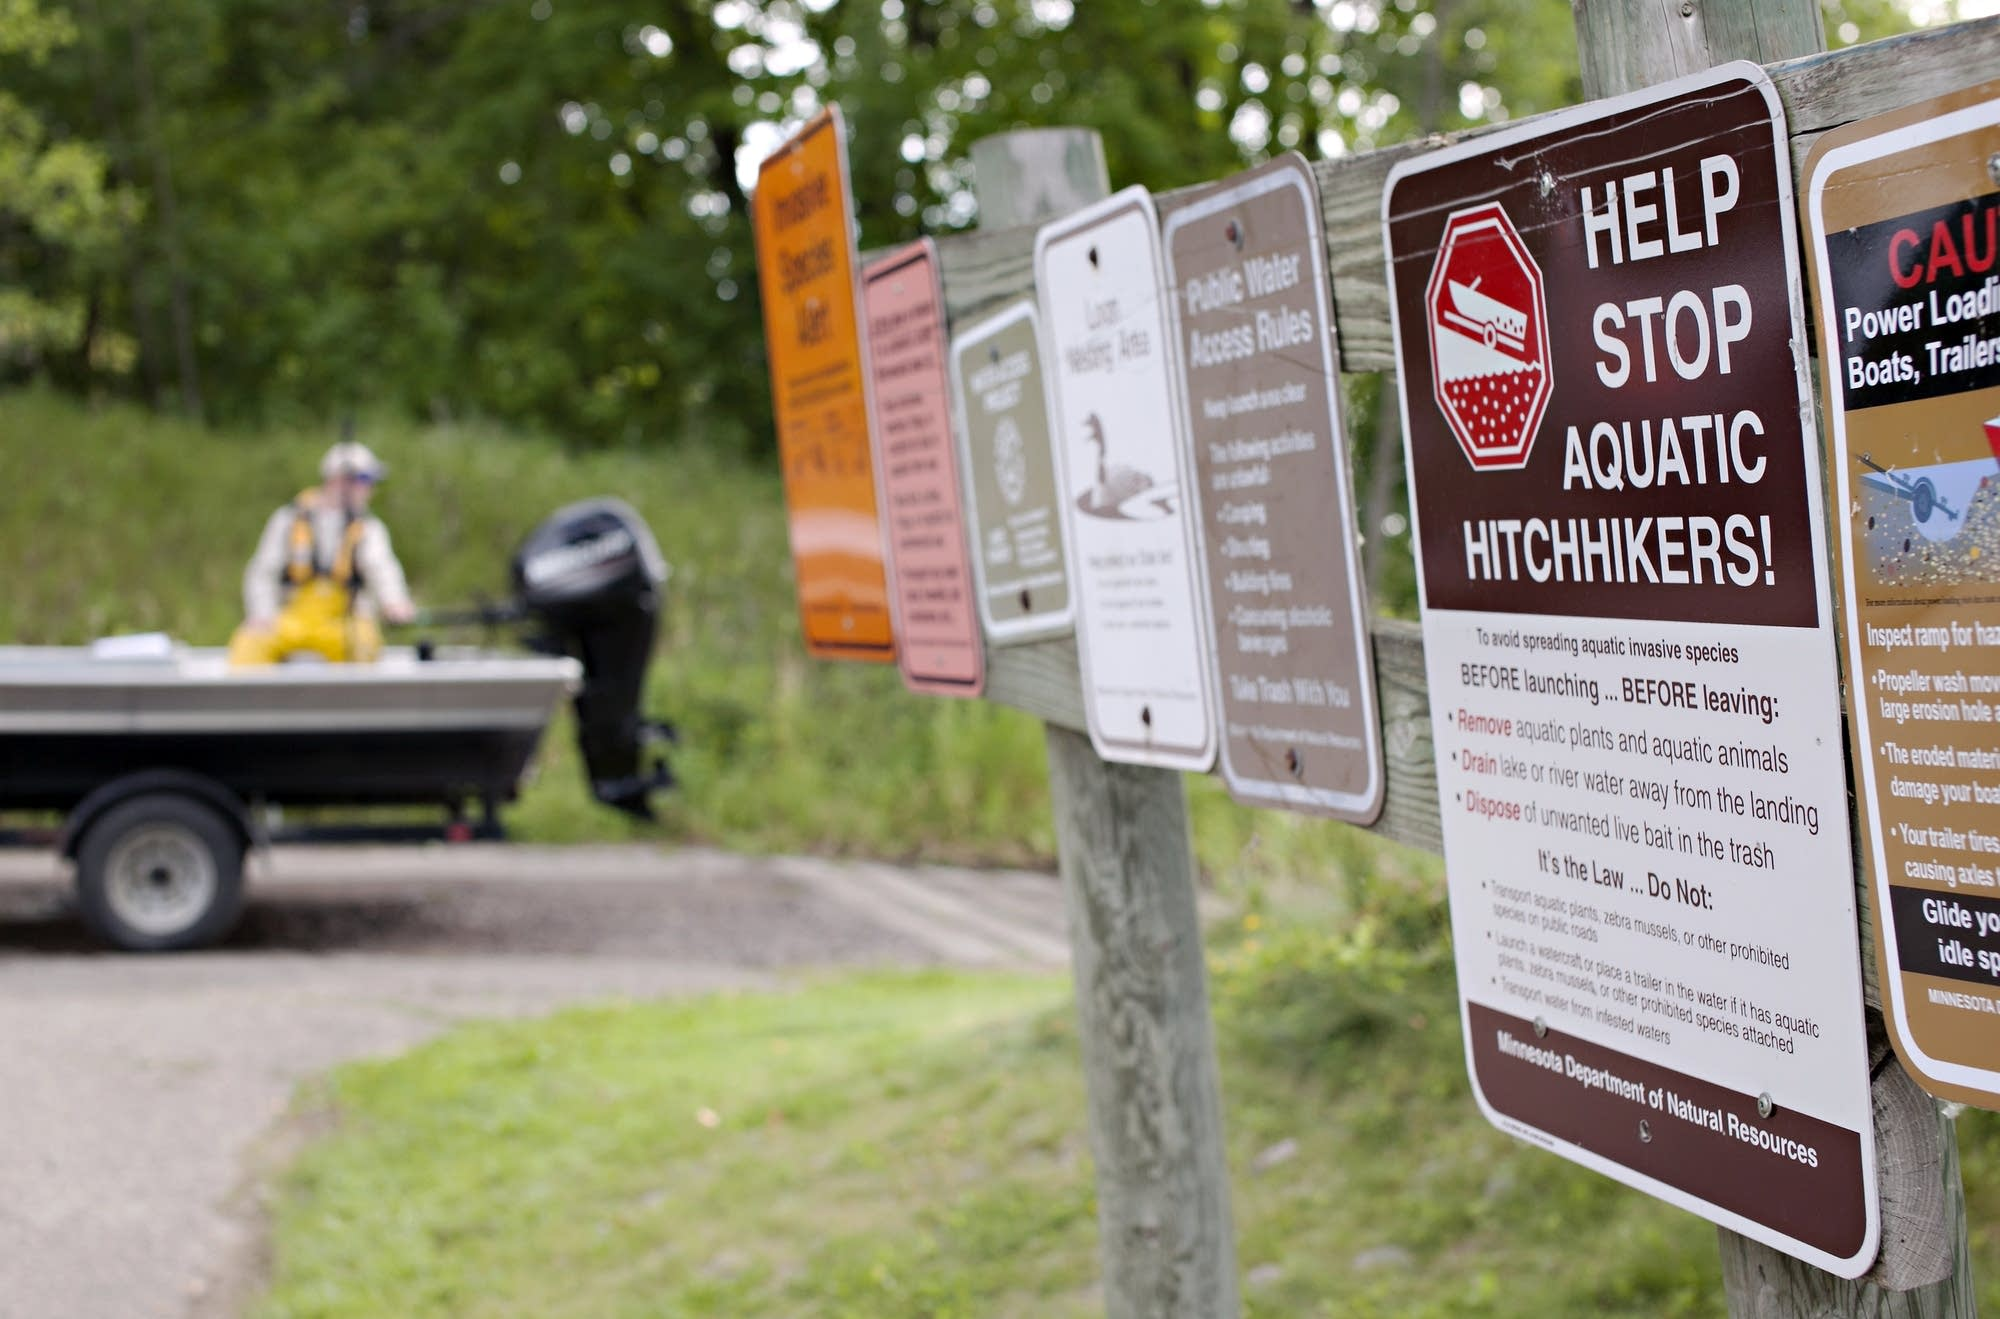 Reminders about invasive species are posted at a public boat launch.